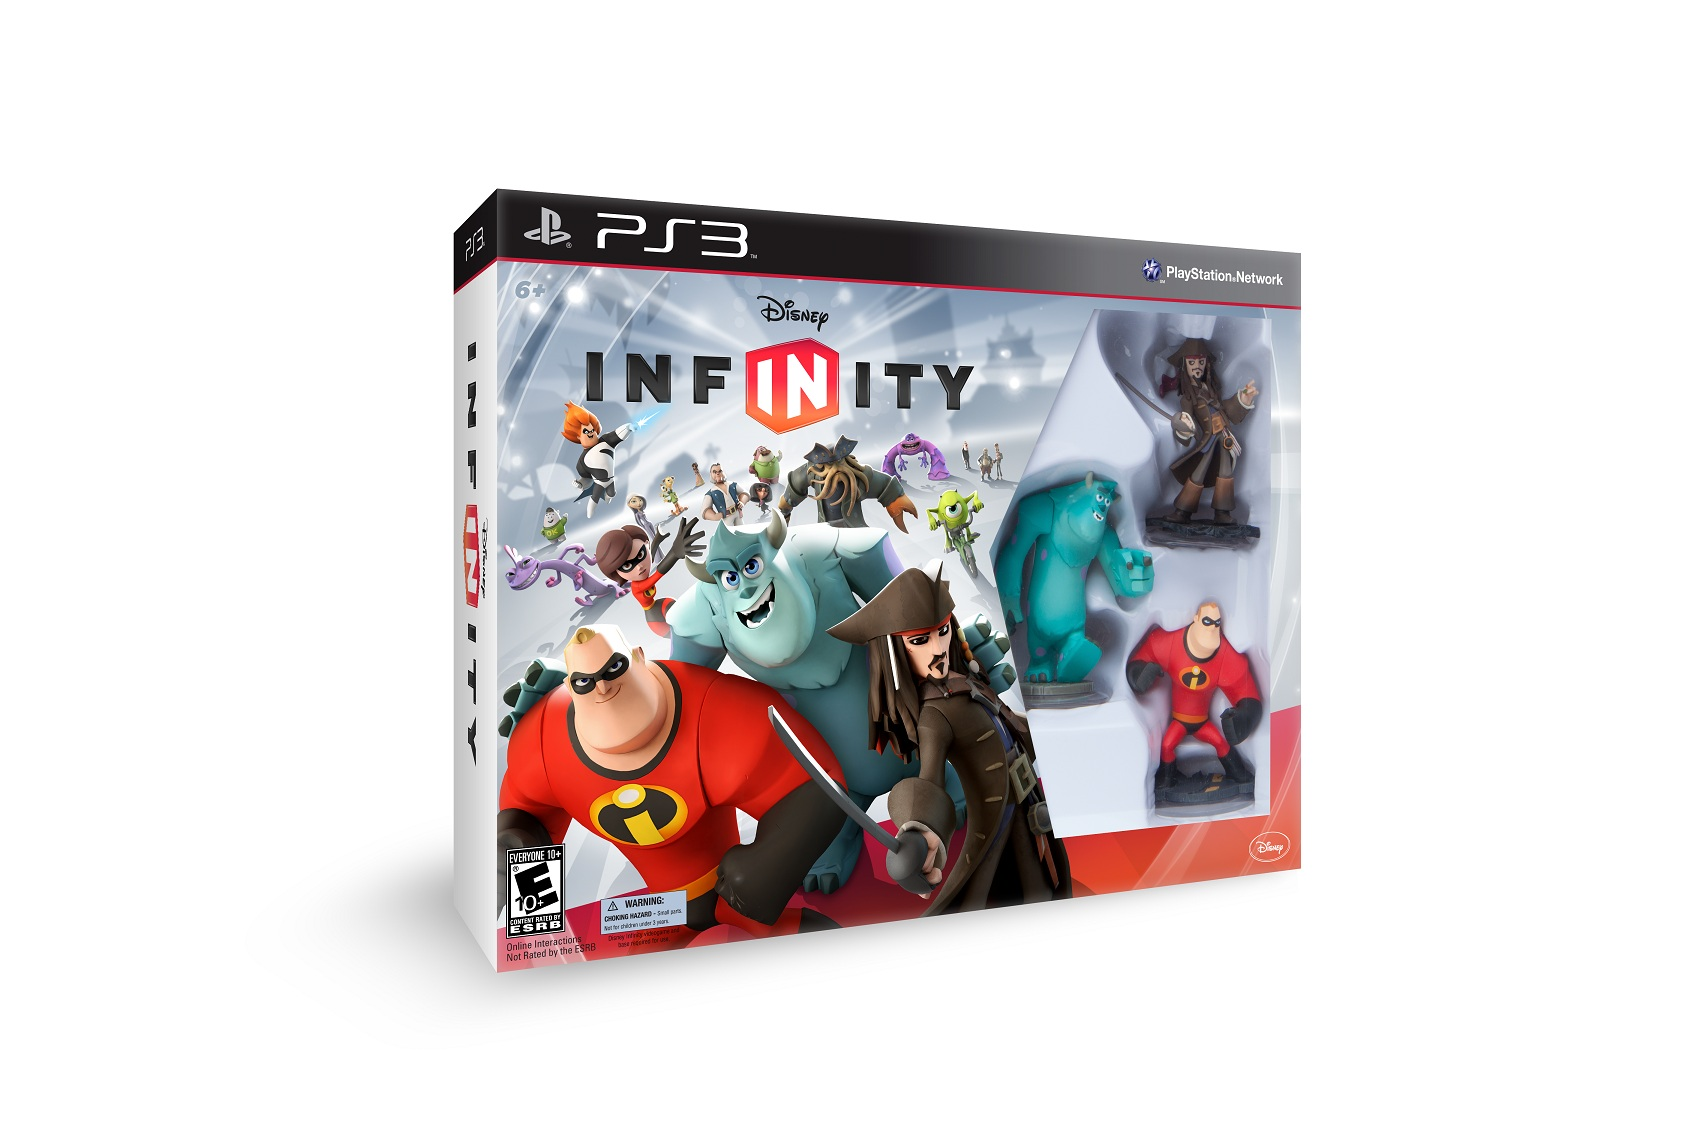 DisneyInfinityPS3